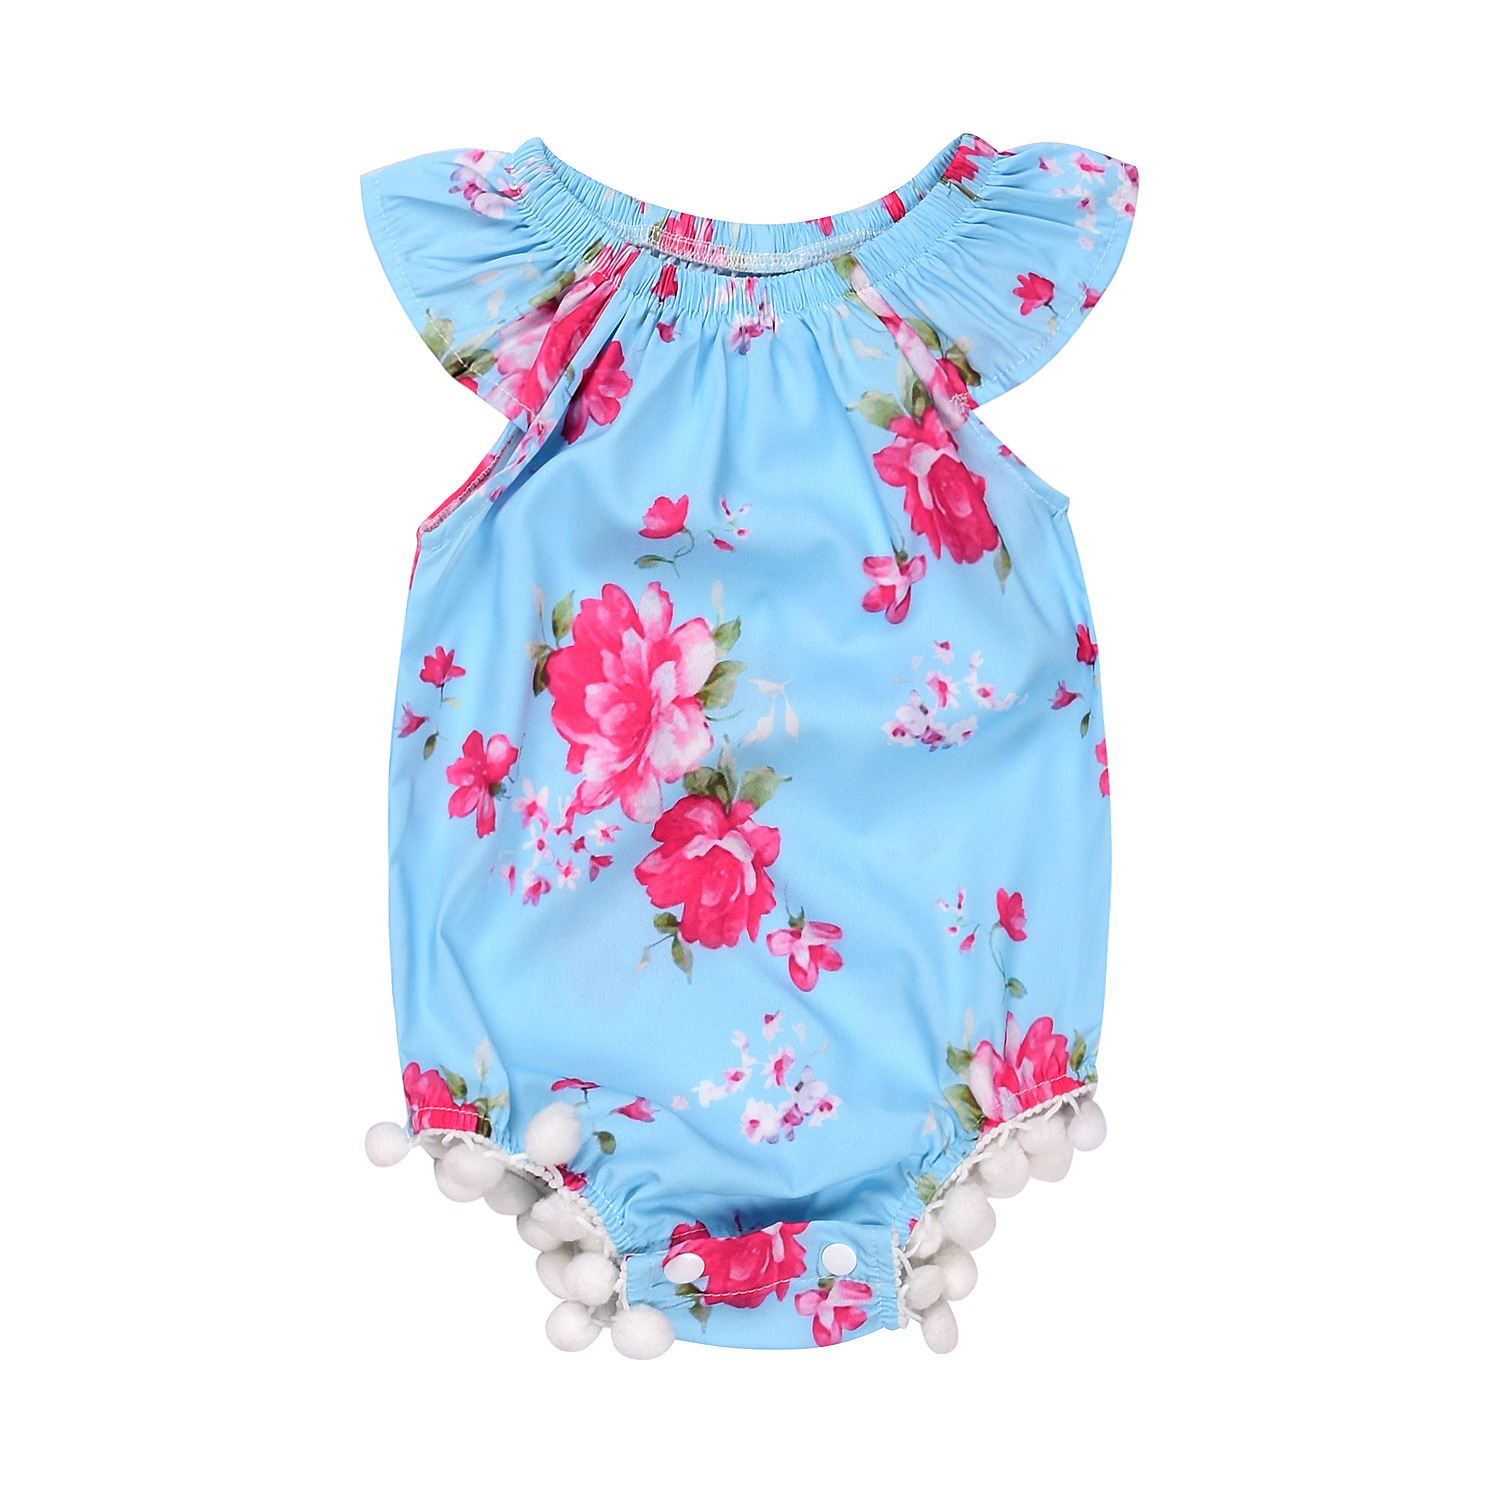 Summer Floral Baby Romper Sleeveless Ruffles Collar Newborn Clothes Infant Onepiece Baby Girls Clothing